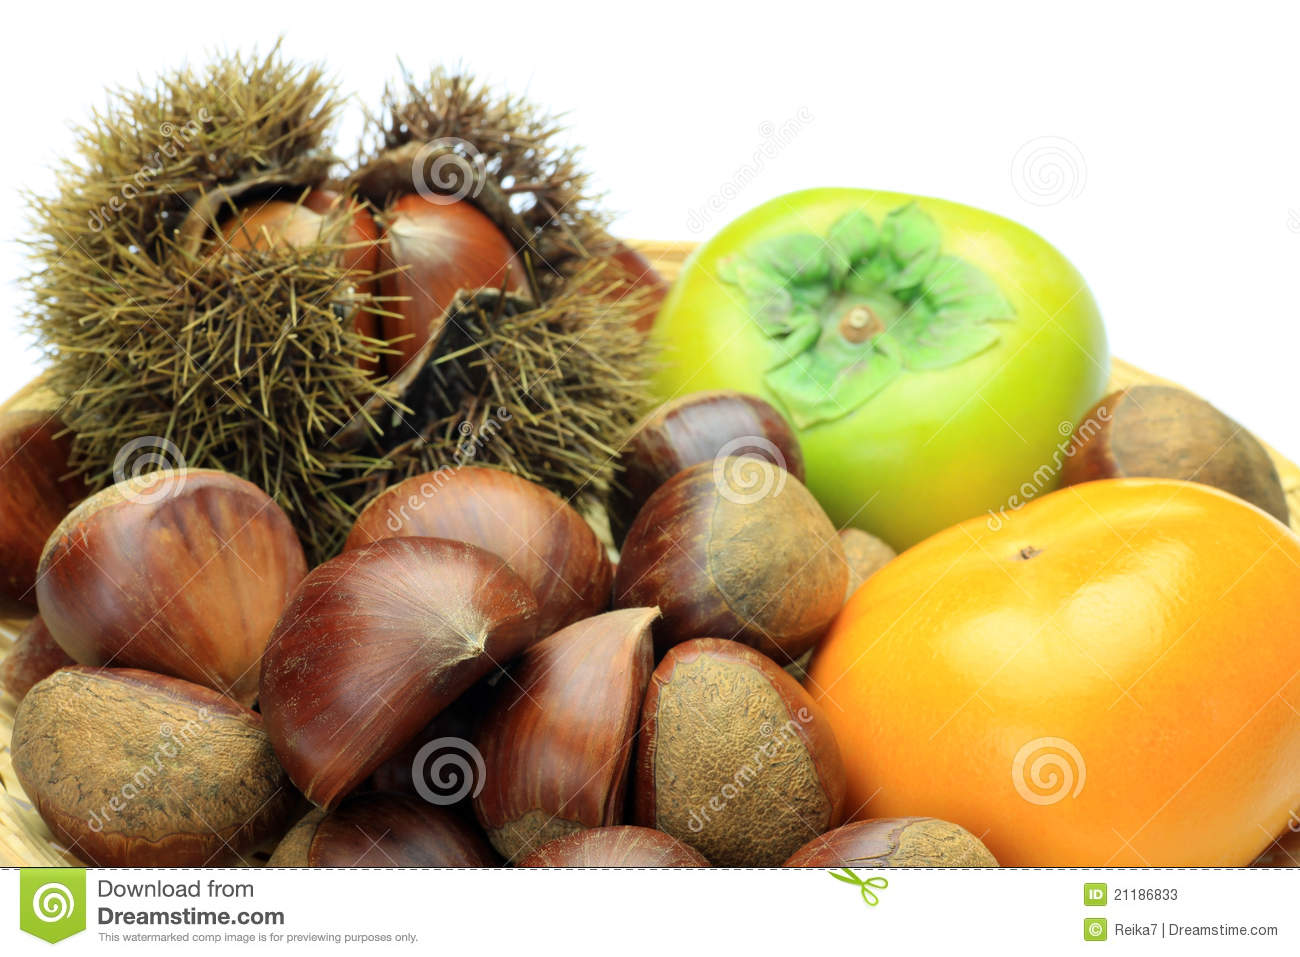 Chestnut and persimmon